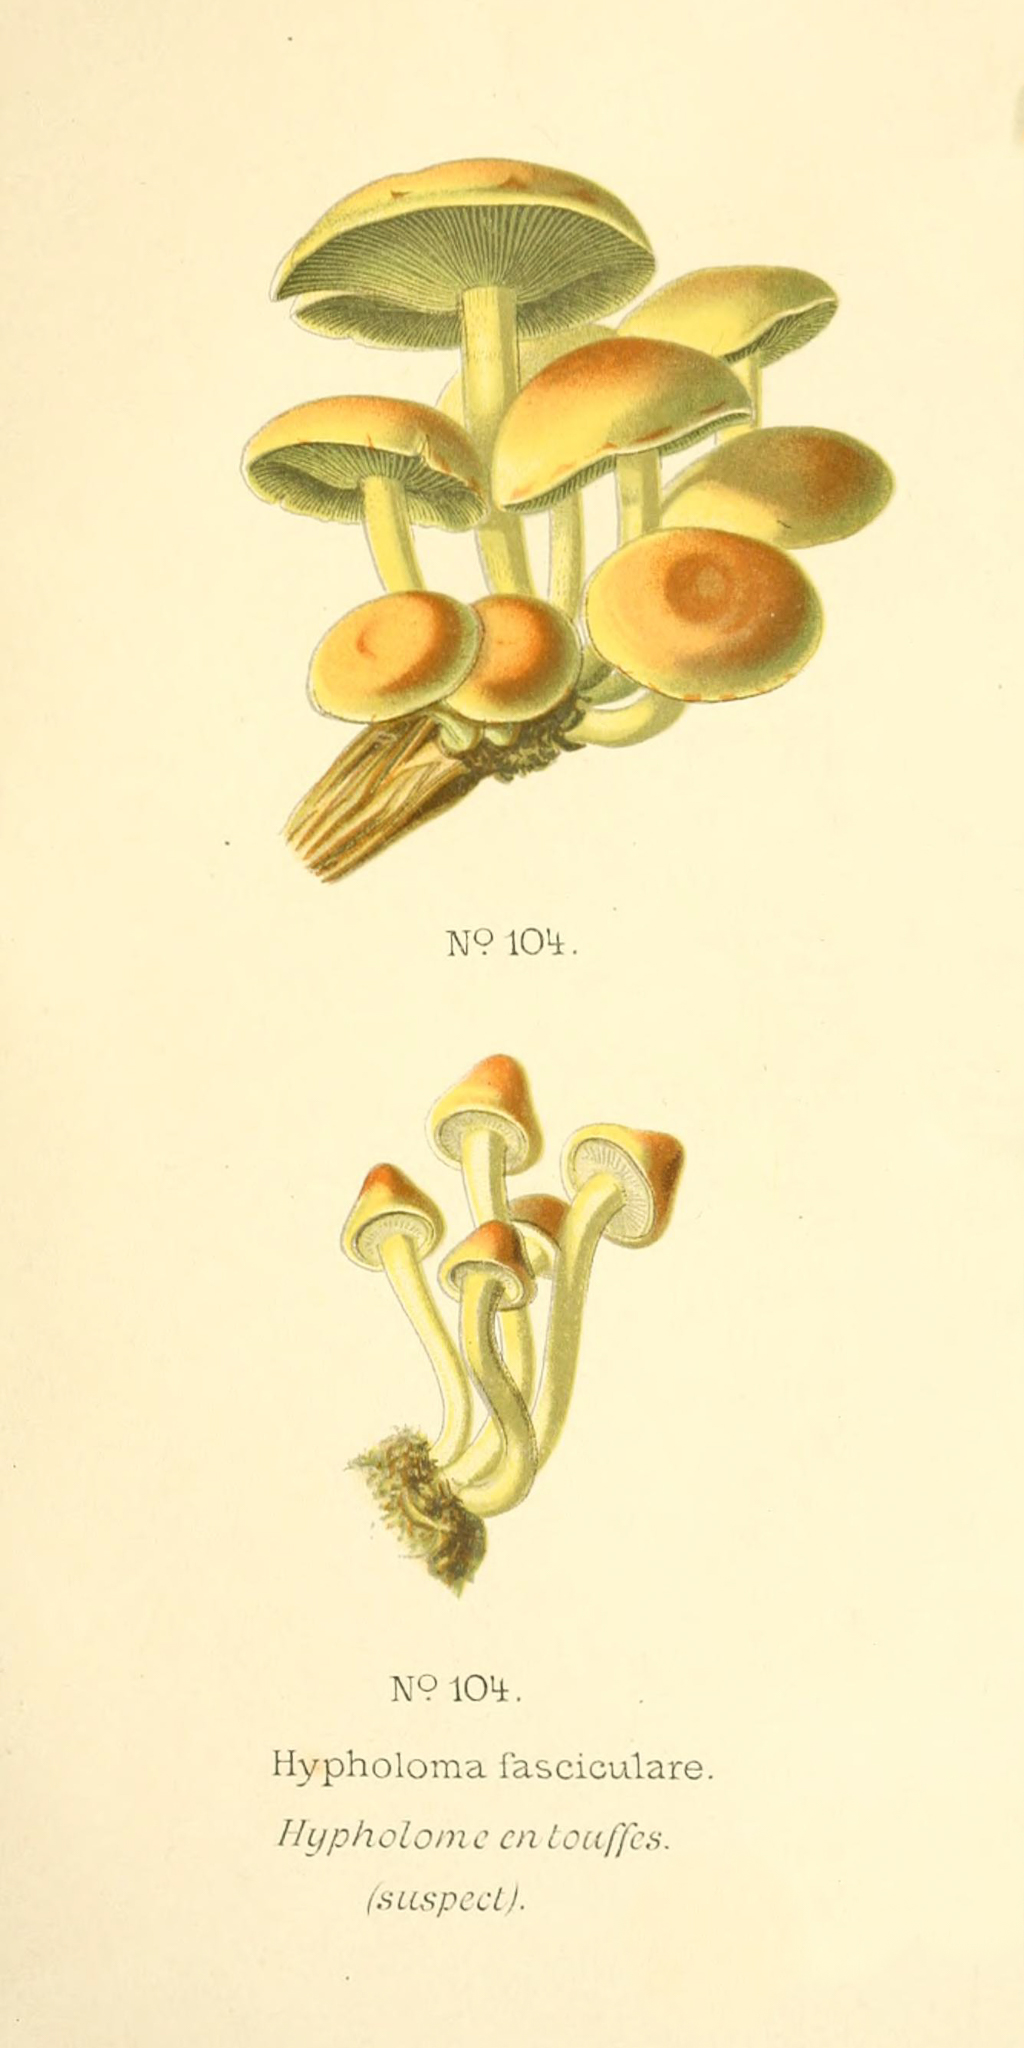 Hypholoma fasciculare - The Hall of Einar - photograph (c) David Bailey (not the)